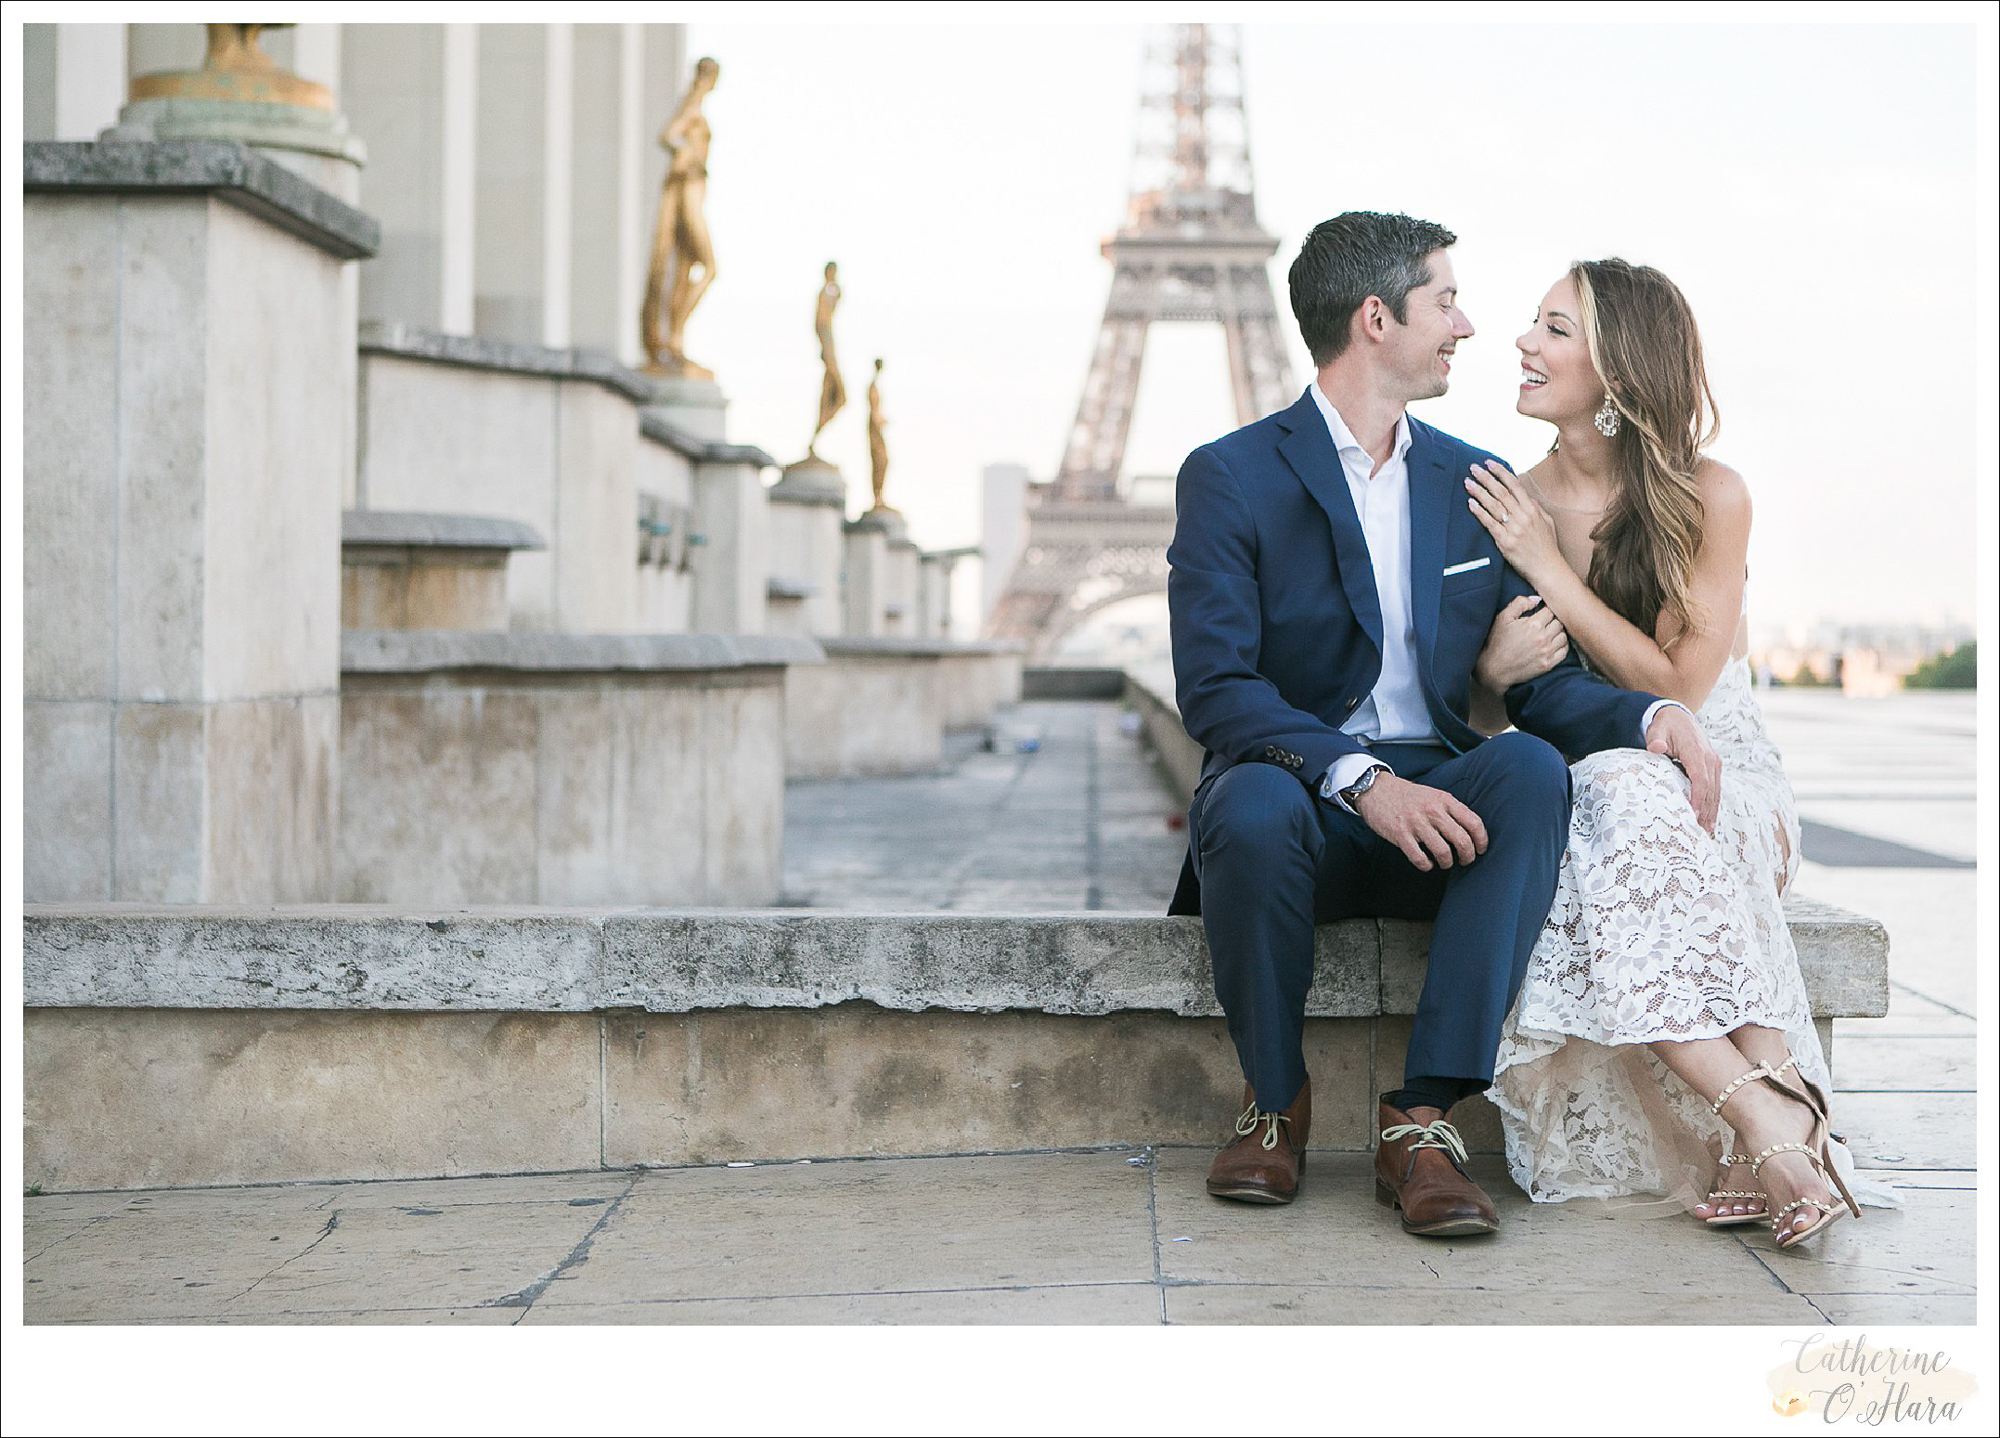 surprise proposal engagement photographer paris france-36.jpg